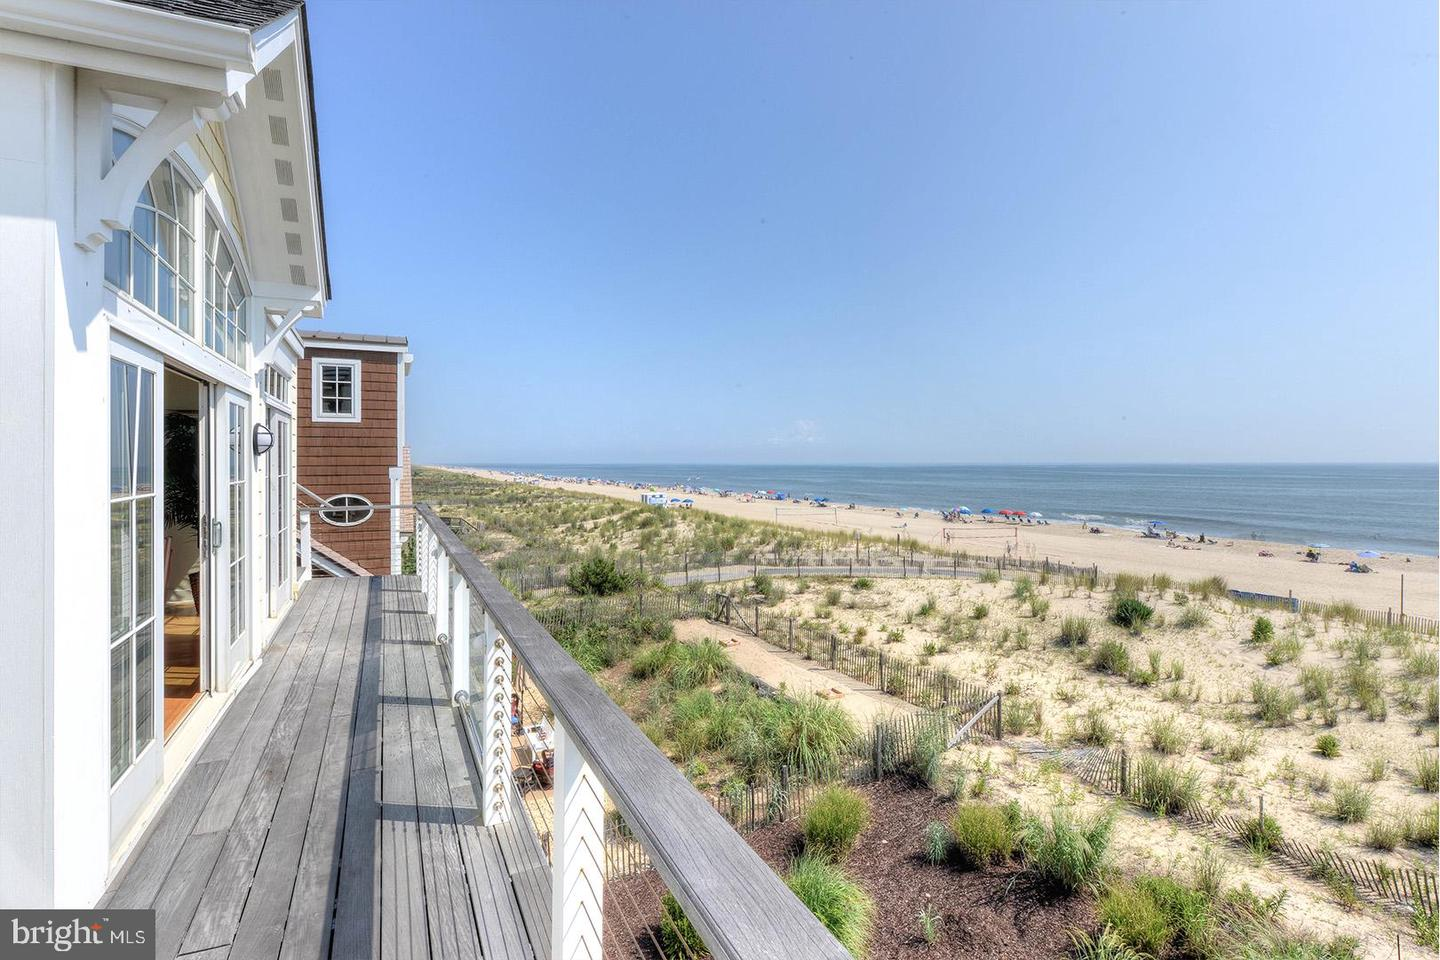 DESU100159-301987211606-2019-09-12-15-11-36 5 Clayton St | Dewey Beach, DE Real Estate For Sale | MLS# Desu100159  - David T. King Realtor